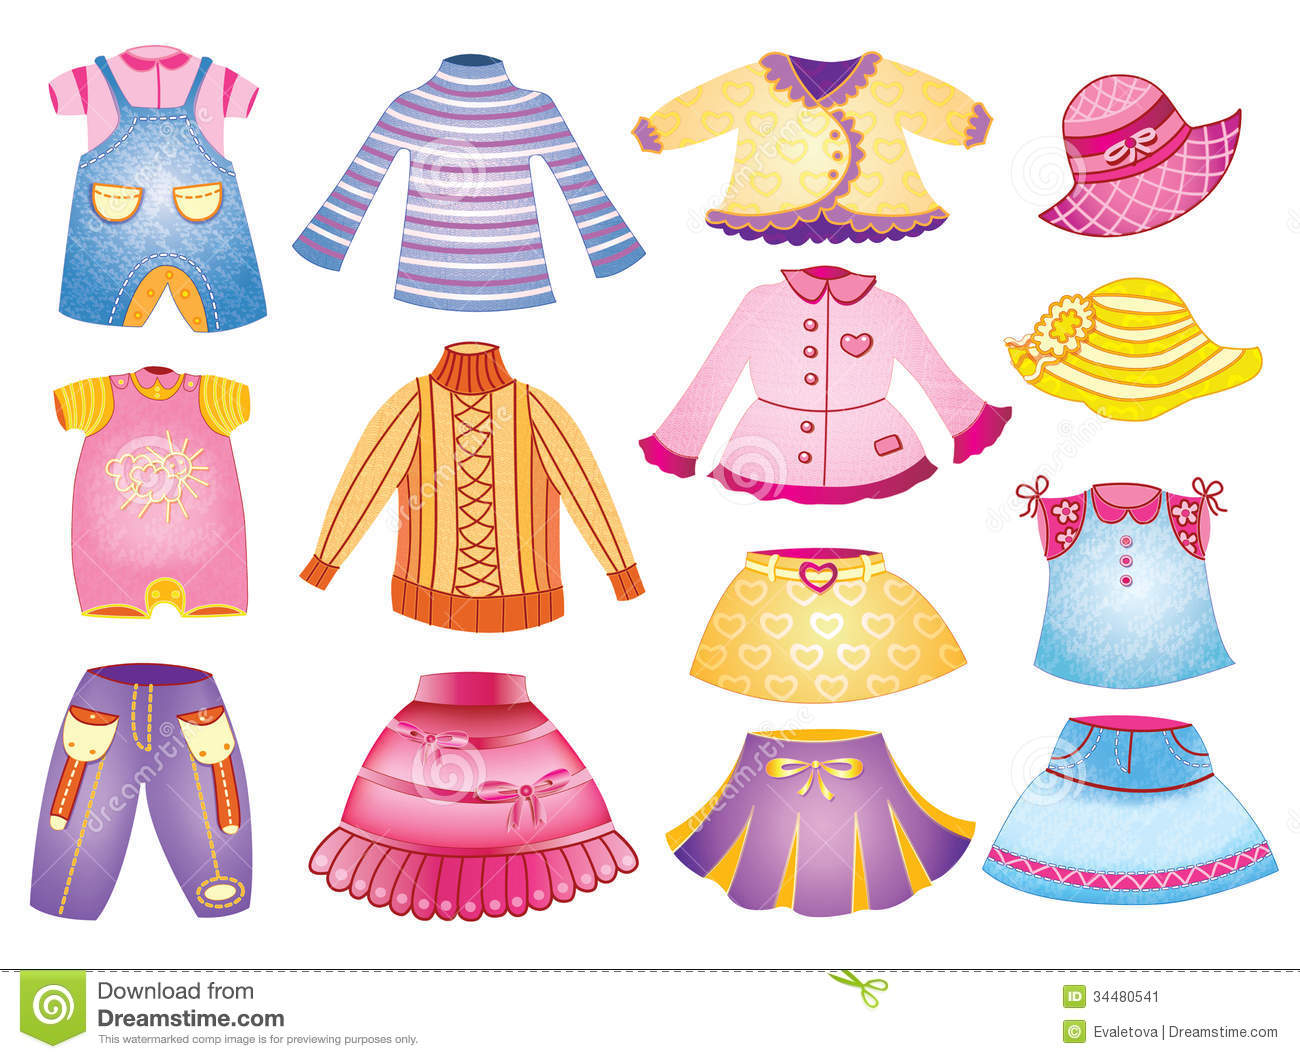 Collection Of Children's Clothing Stock Image - Image ...: http://www.dreamstime.com/stock-image-collection-children-s-clothing-clothi-vector-illustration-ng-image34480541